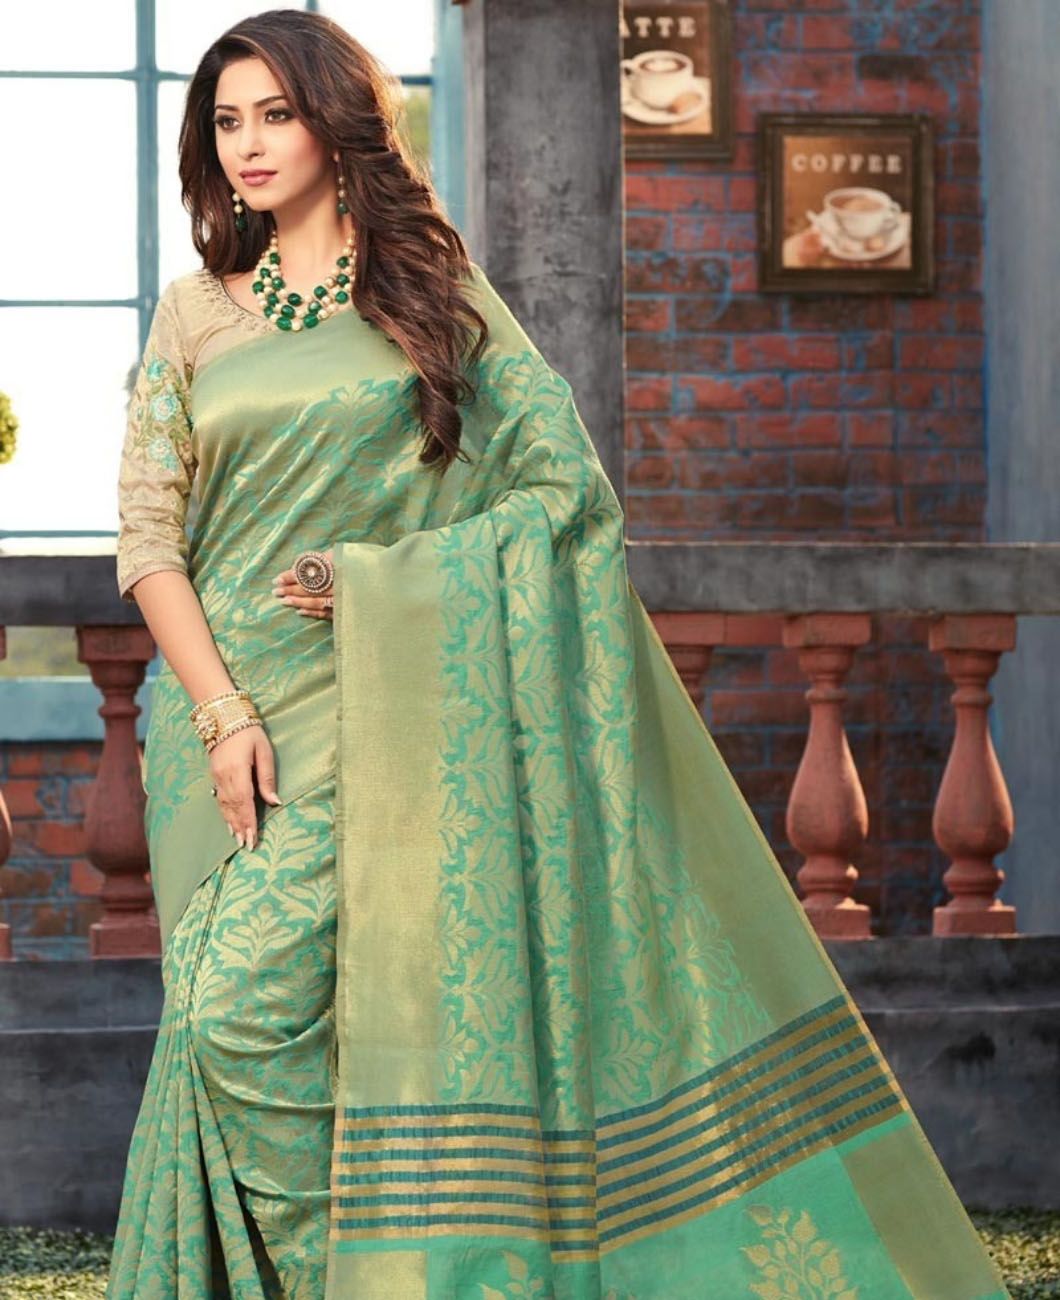 indian-saree-drape-drapes-vintafe-curtains-la-polo-lapolo